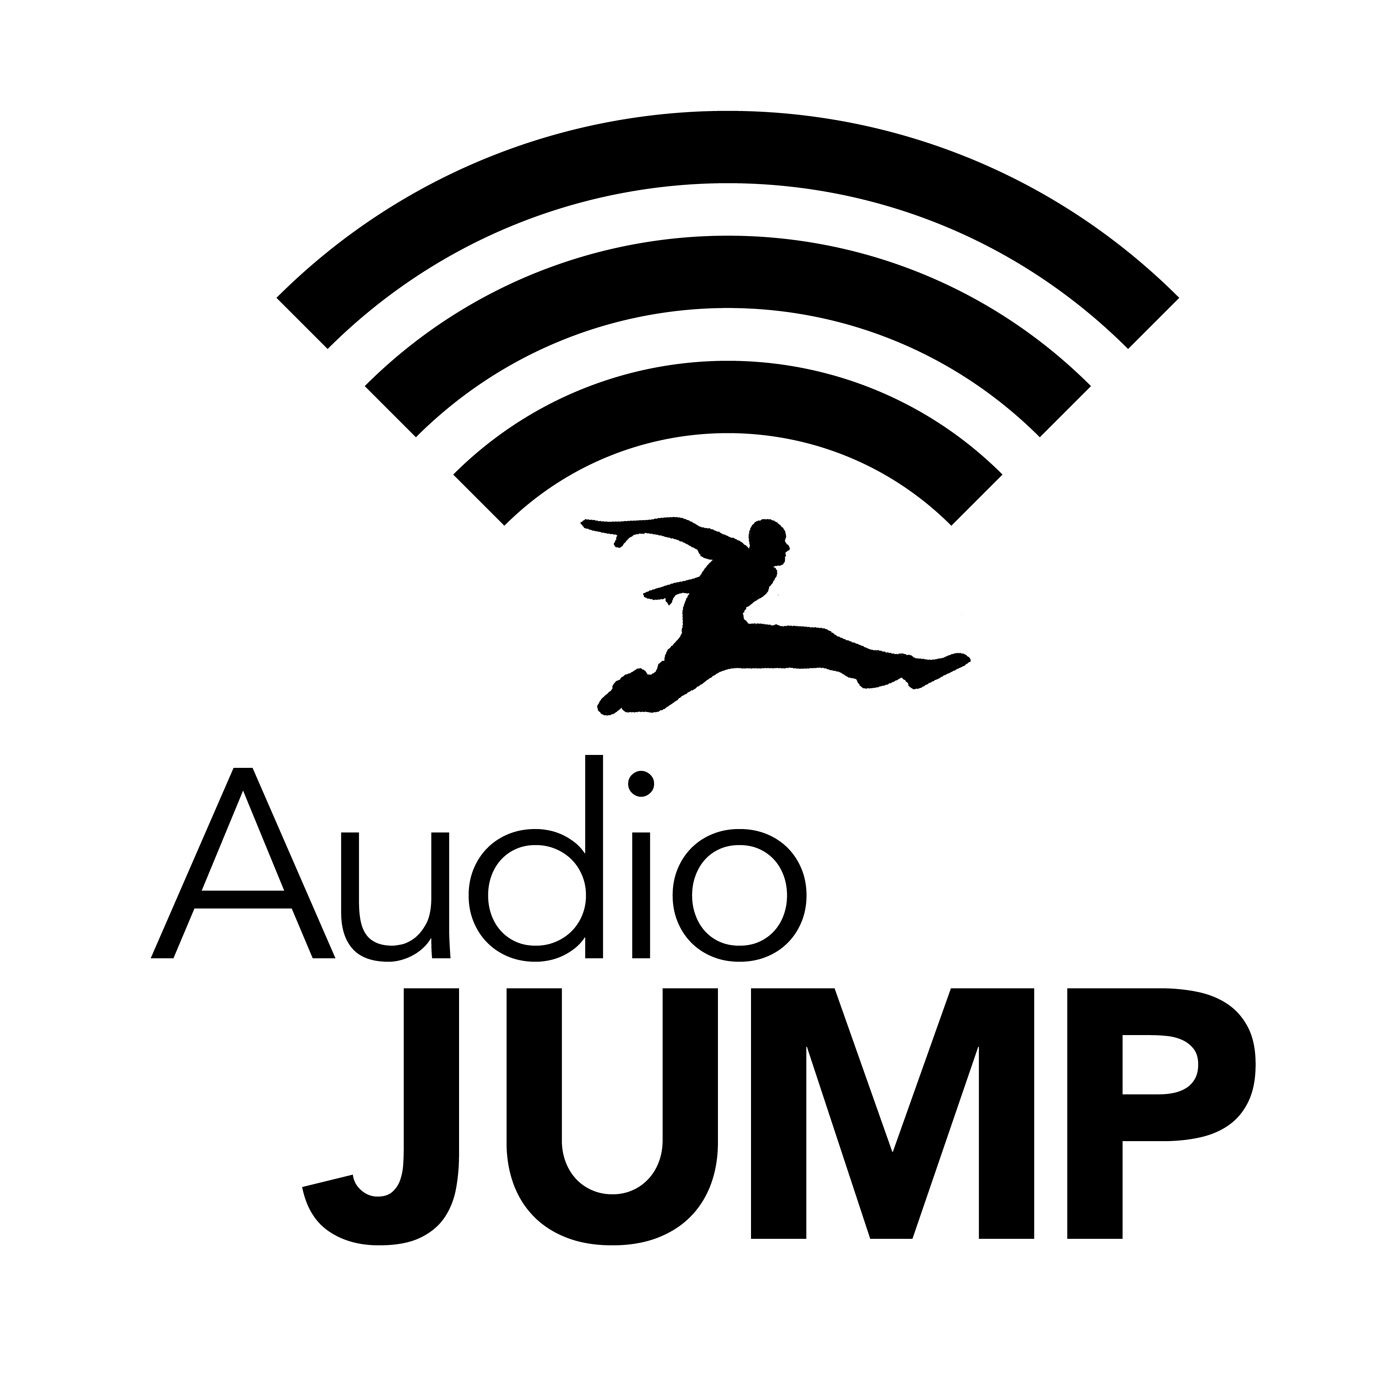 AudioJUMP - Parkour People Podcast